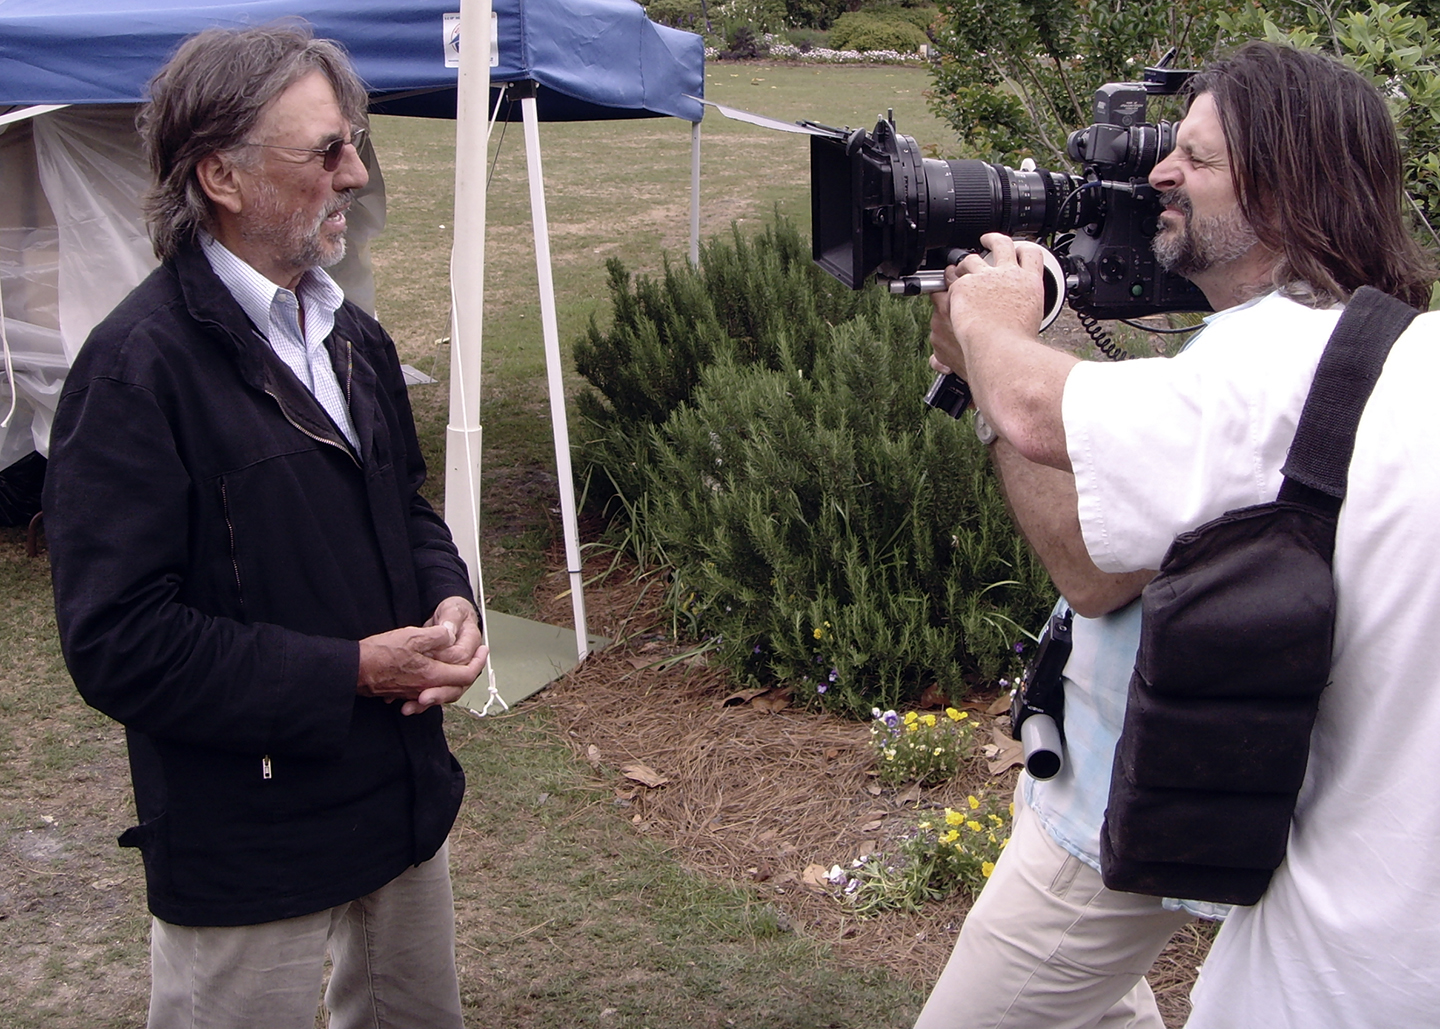 James Chressanthis, ASC, GSC lines up on his subject; Vilmos Zsigmond, ASC, HSC; while shooting his documentary No Subtitles Necessary: Laszlo & Vilmos (2008).